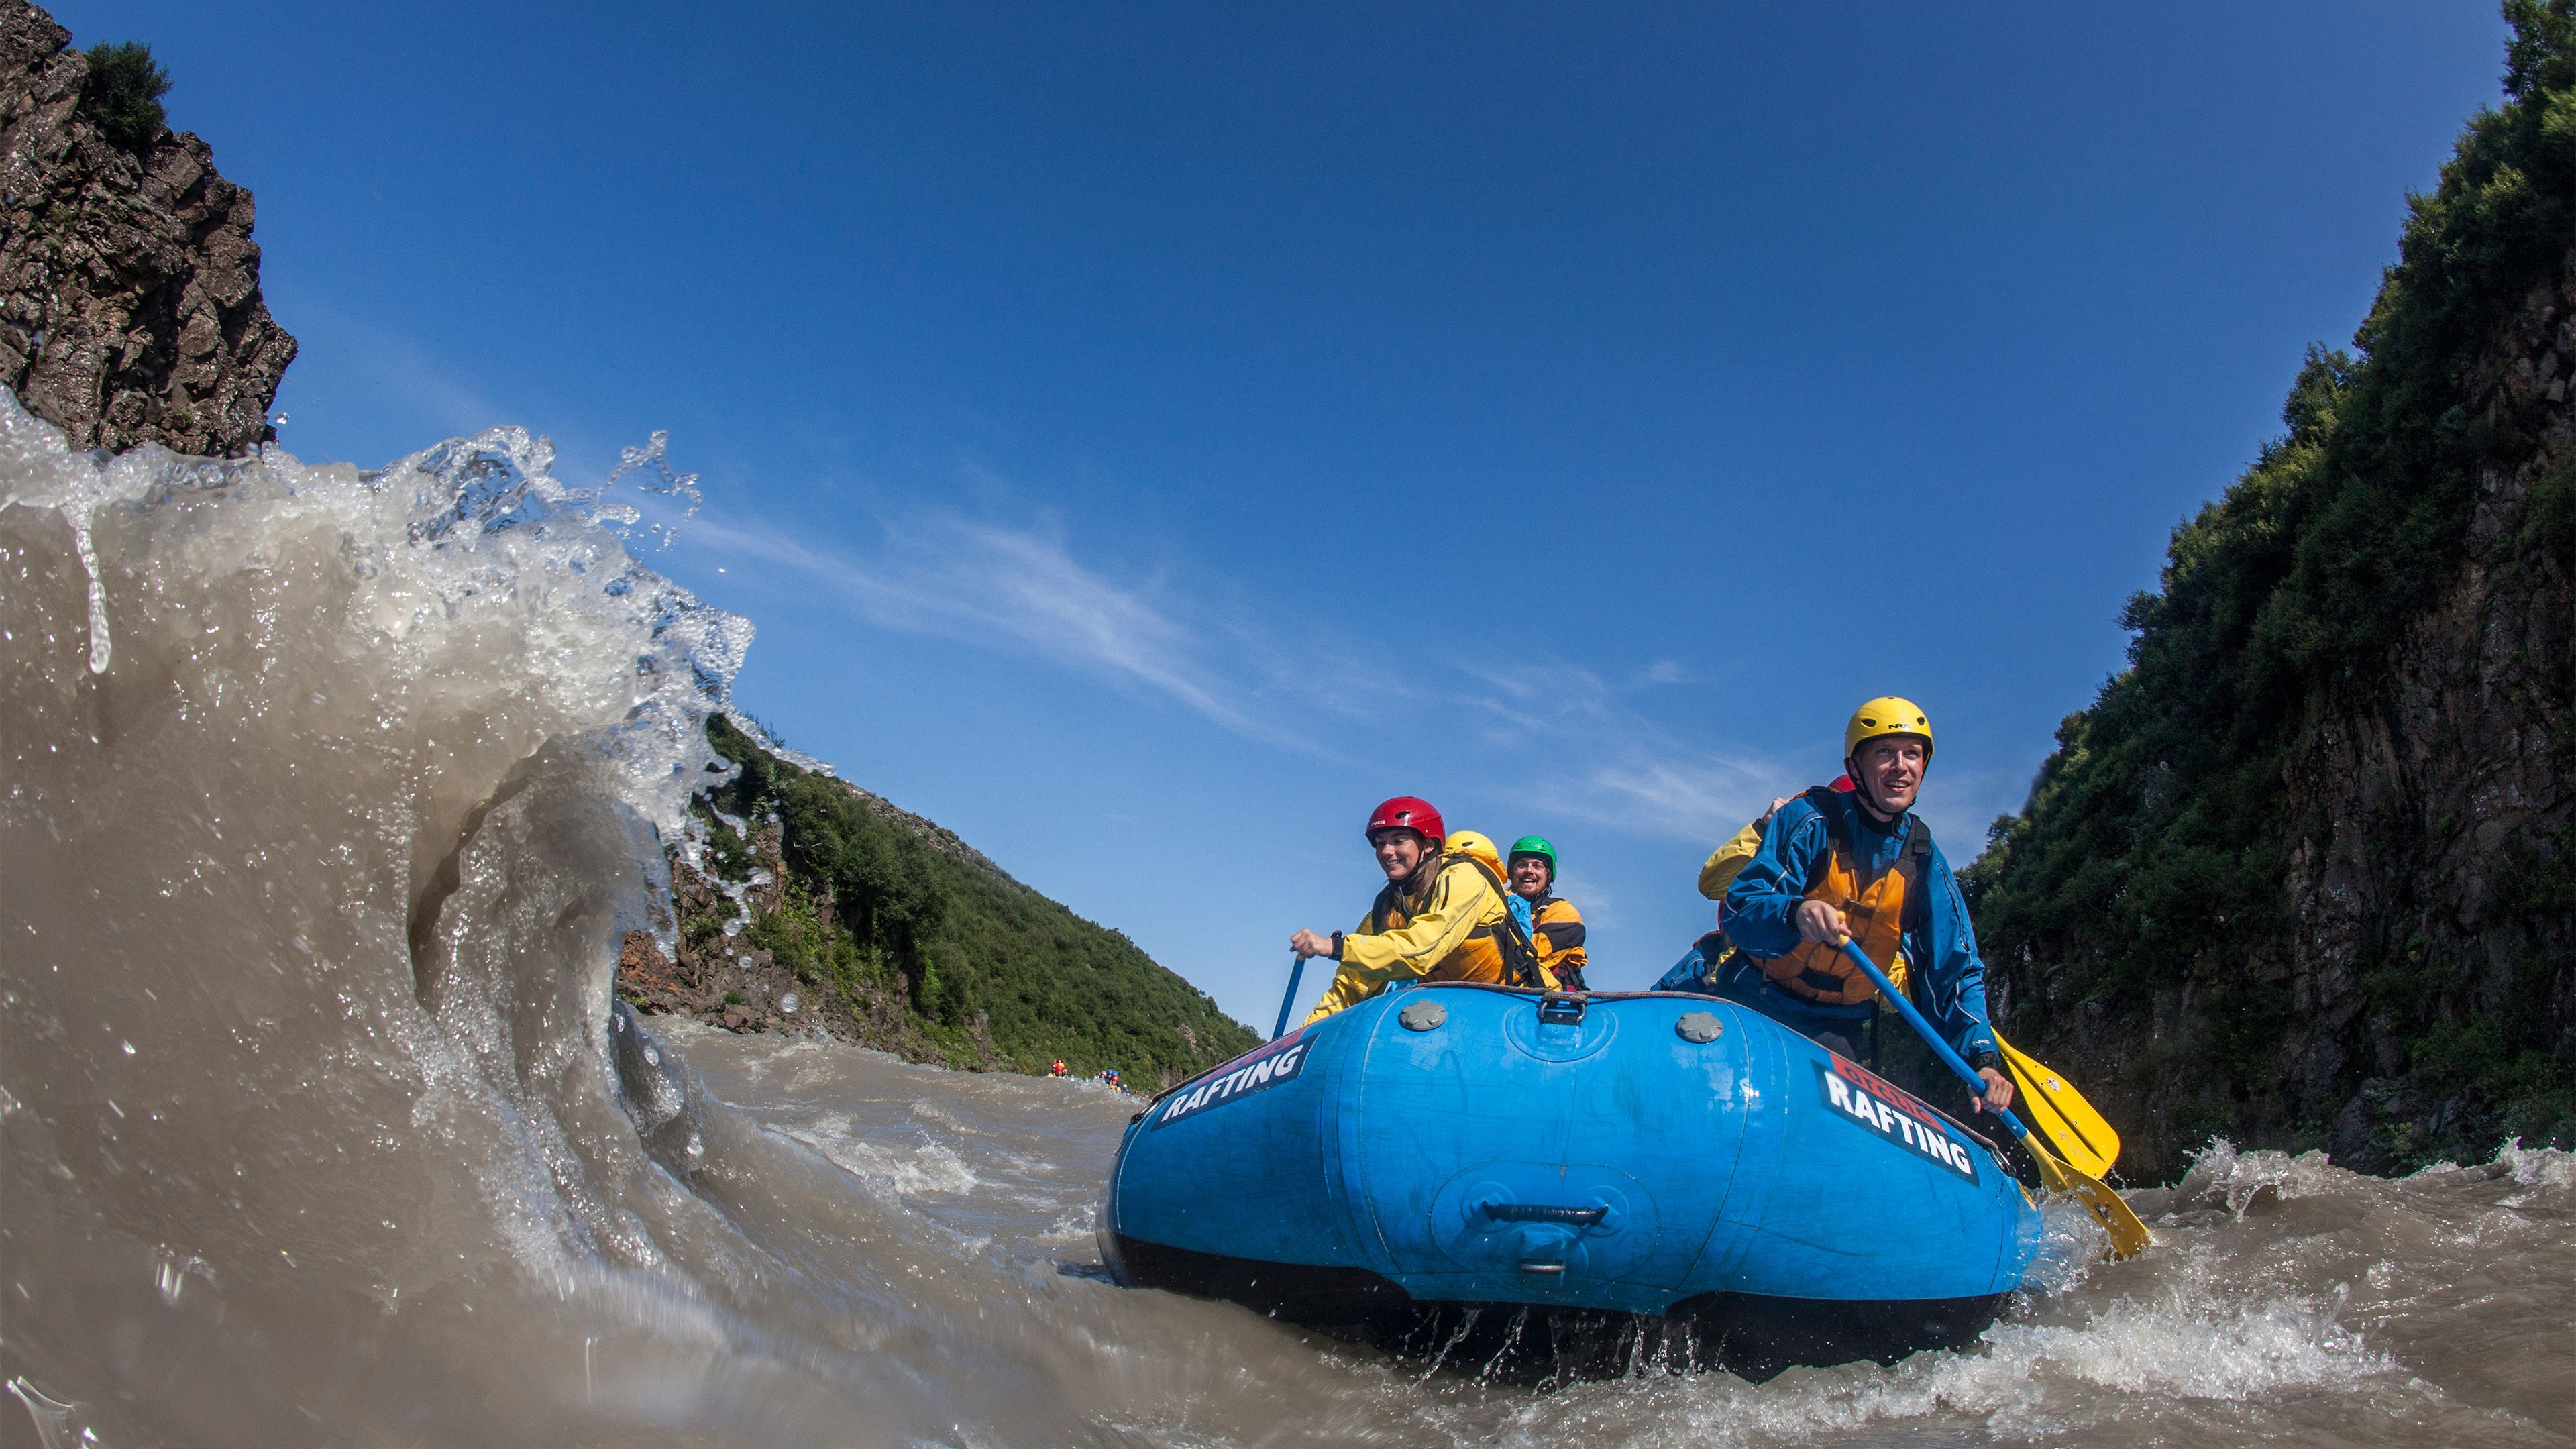 View of a group enjoying a water rafting adventure in Gullfoss Canyon of southwest Iceland